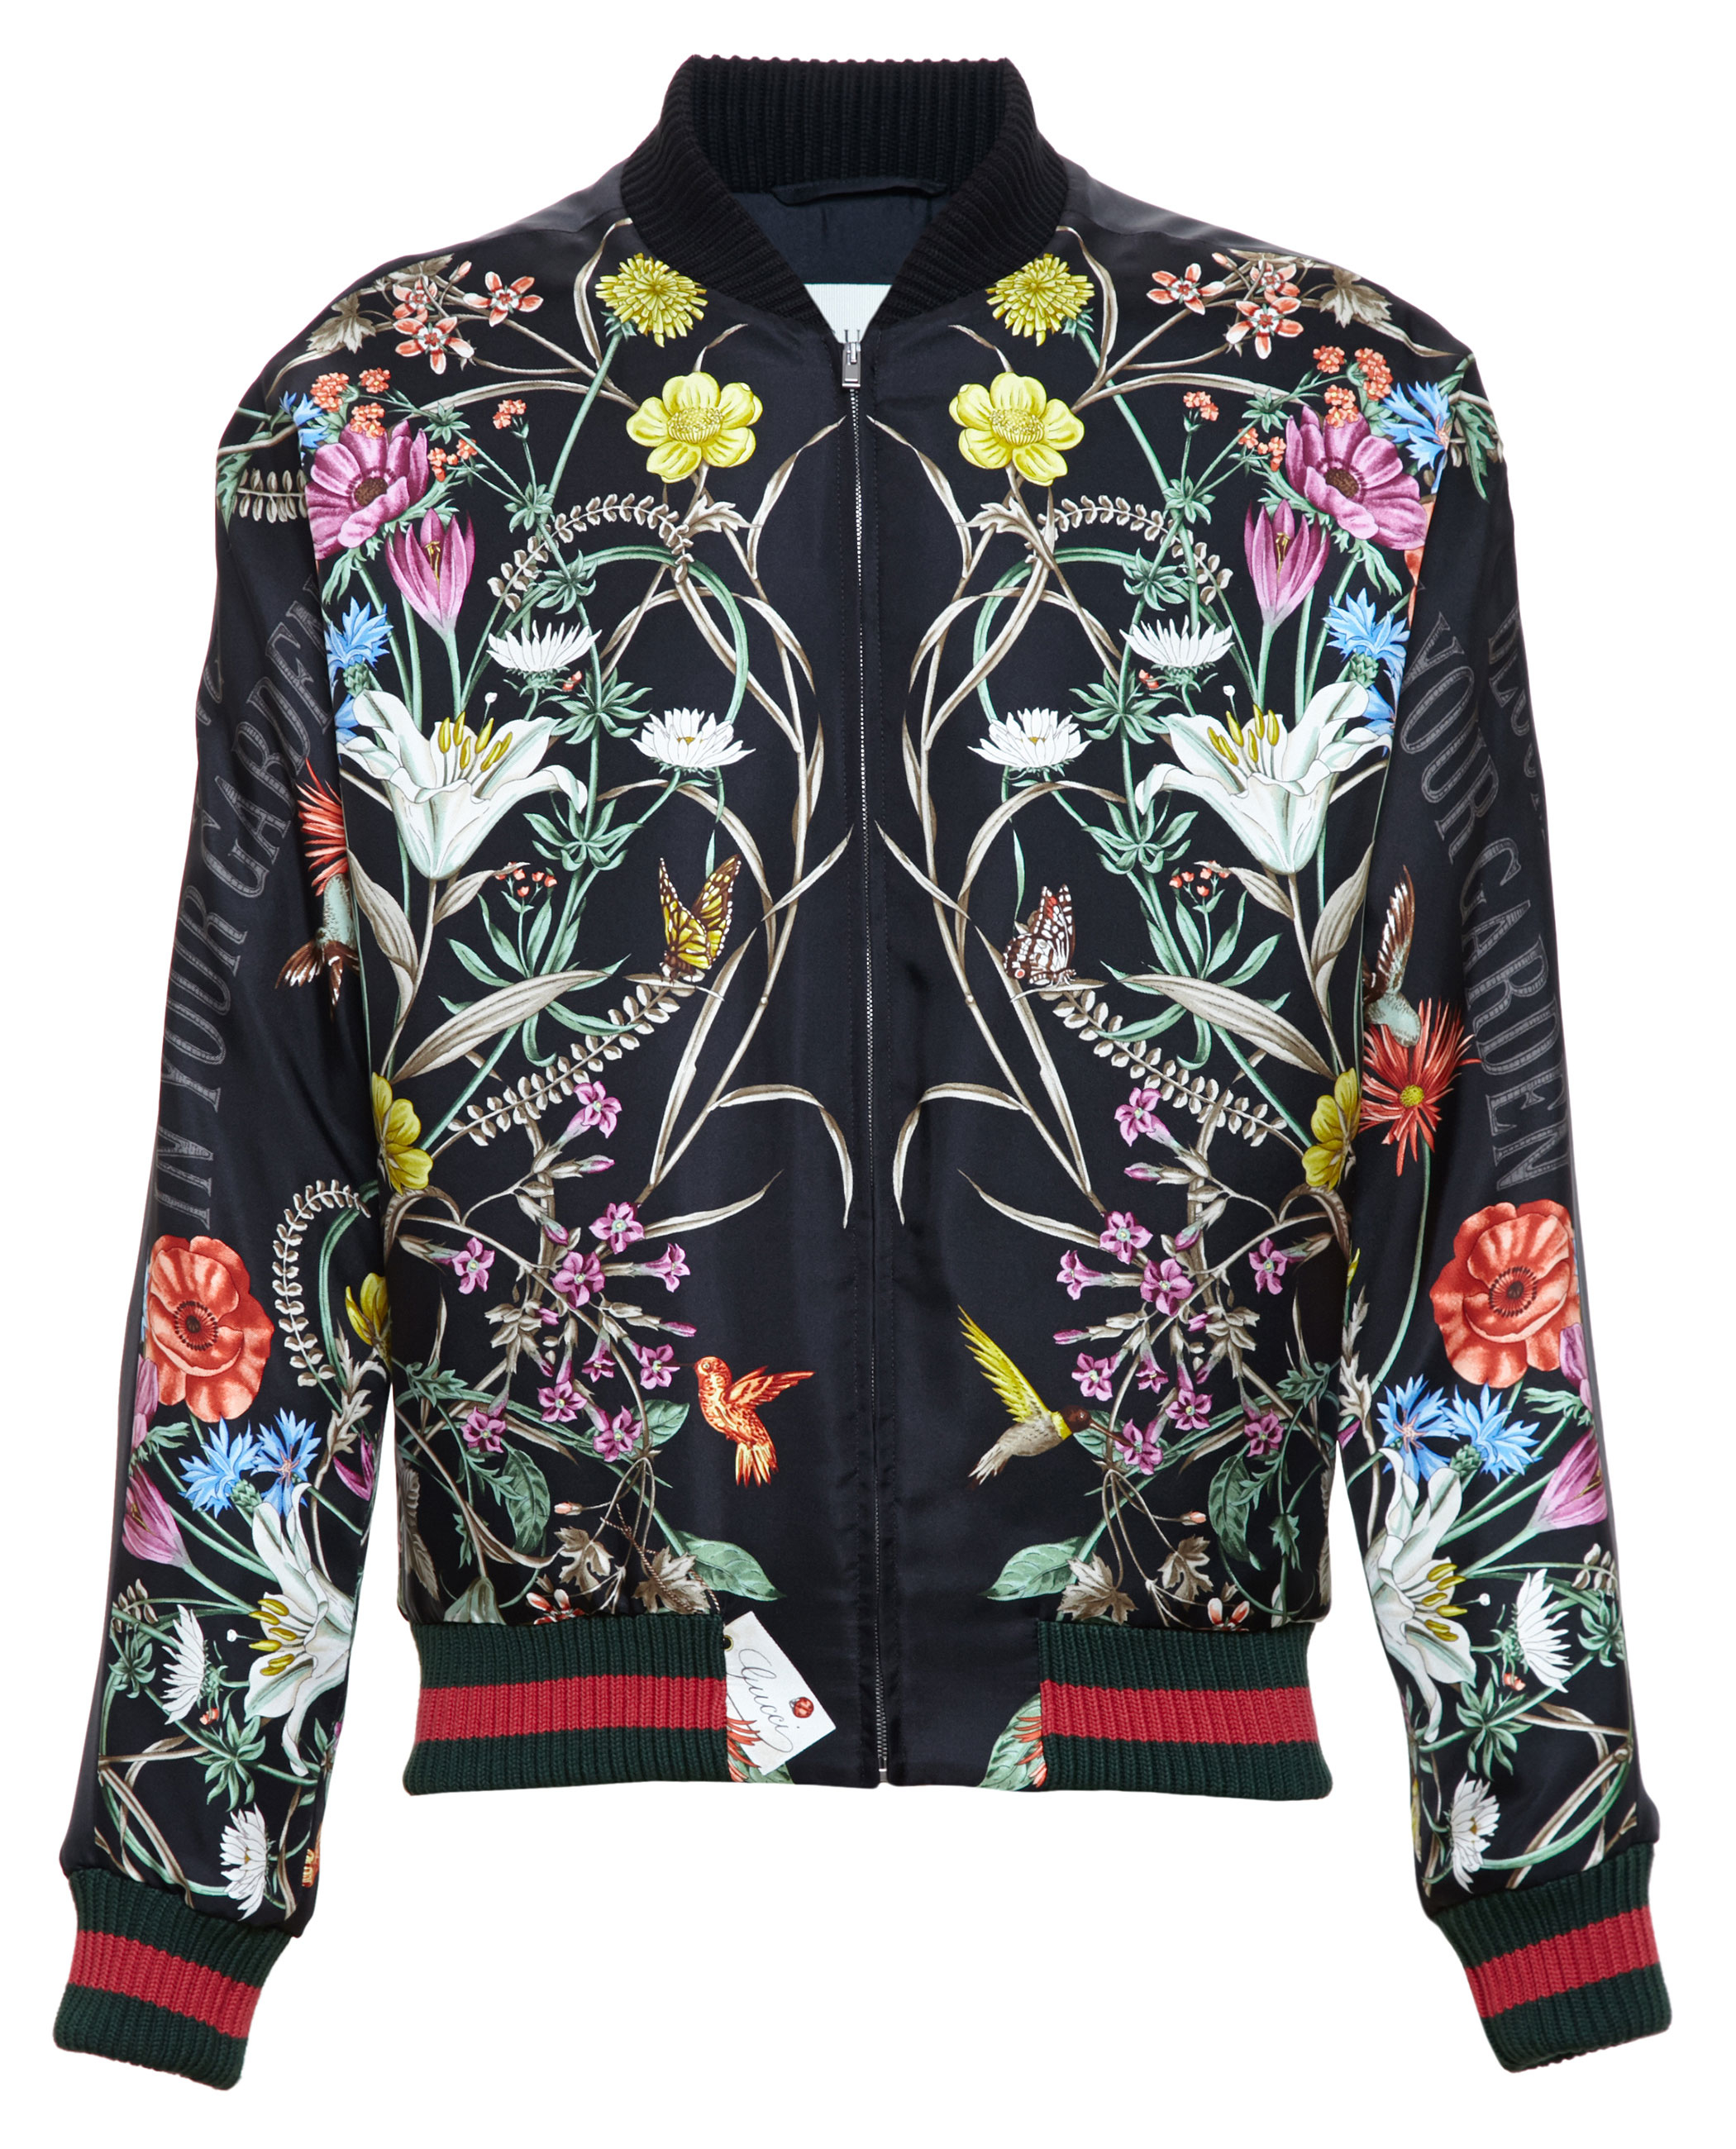 Gucci Floral Print Embroidered Silk Bomber Jacket In Black